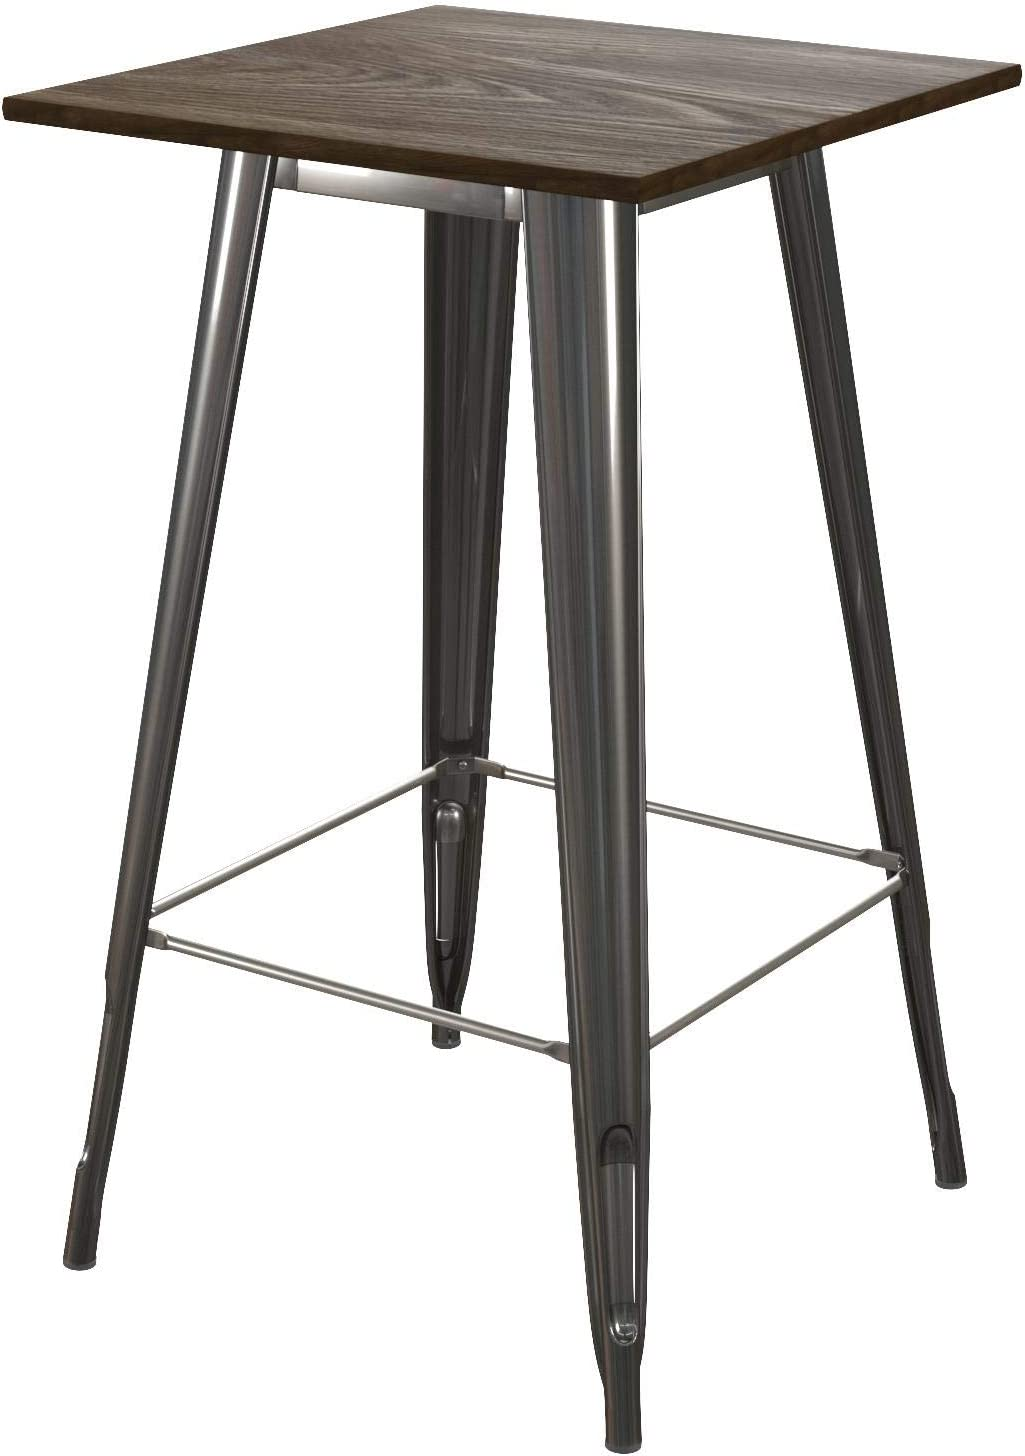 DHP Elie Bar Table, Antique Gun Metal